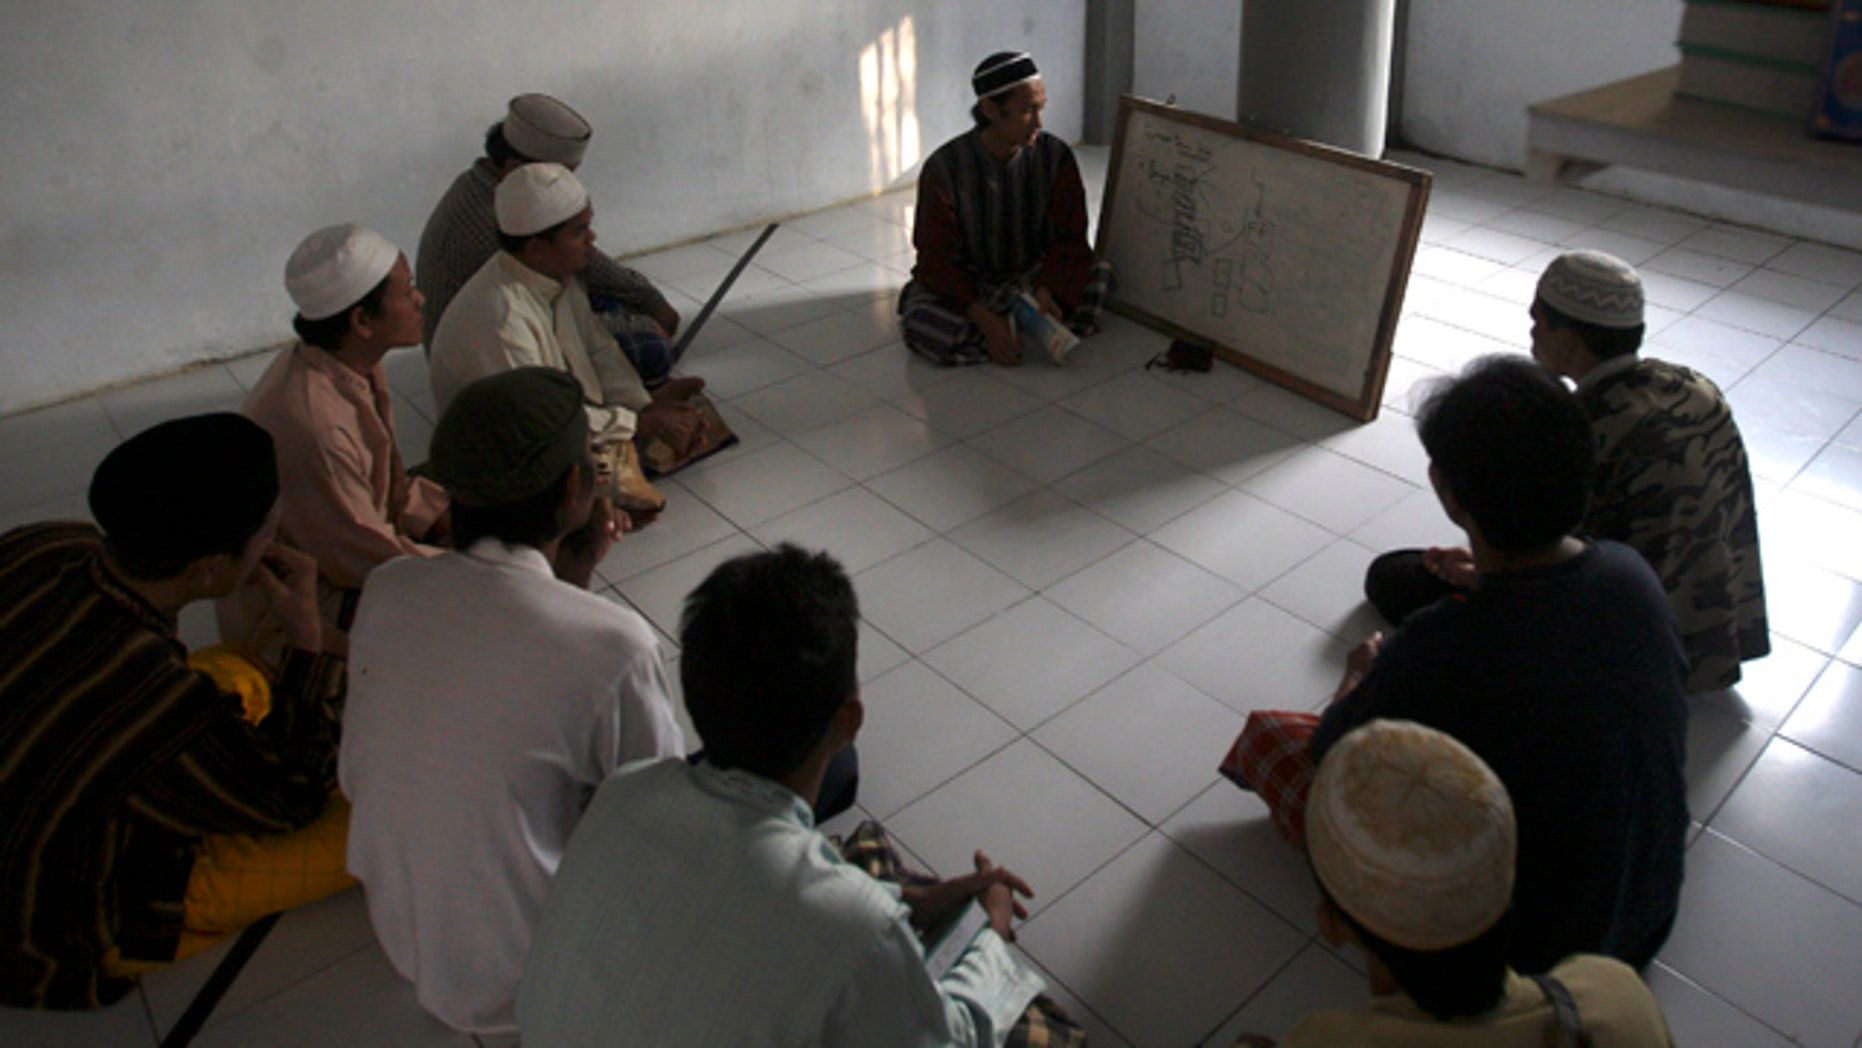 """June 6: Prisoners attend a religious class led by a jailed militant Arif Syaifudin, also known as """"Firdaus,"""" in Block F of the Porong prison in East Java, Indonesia."""